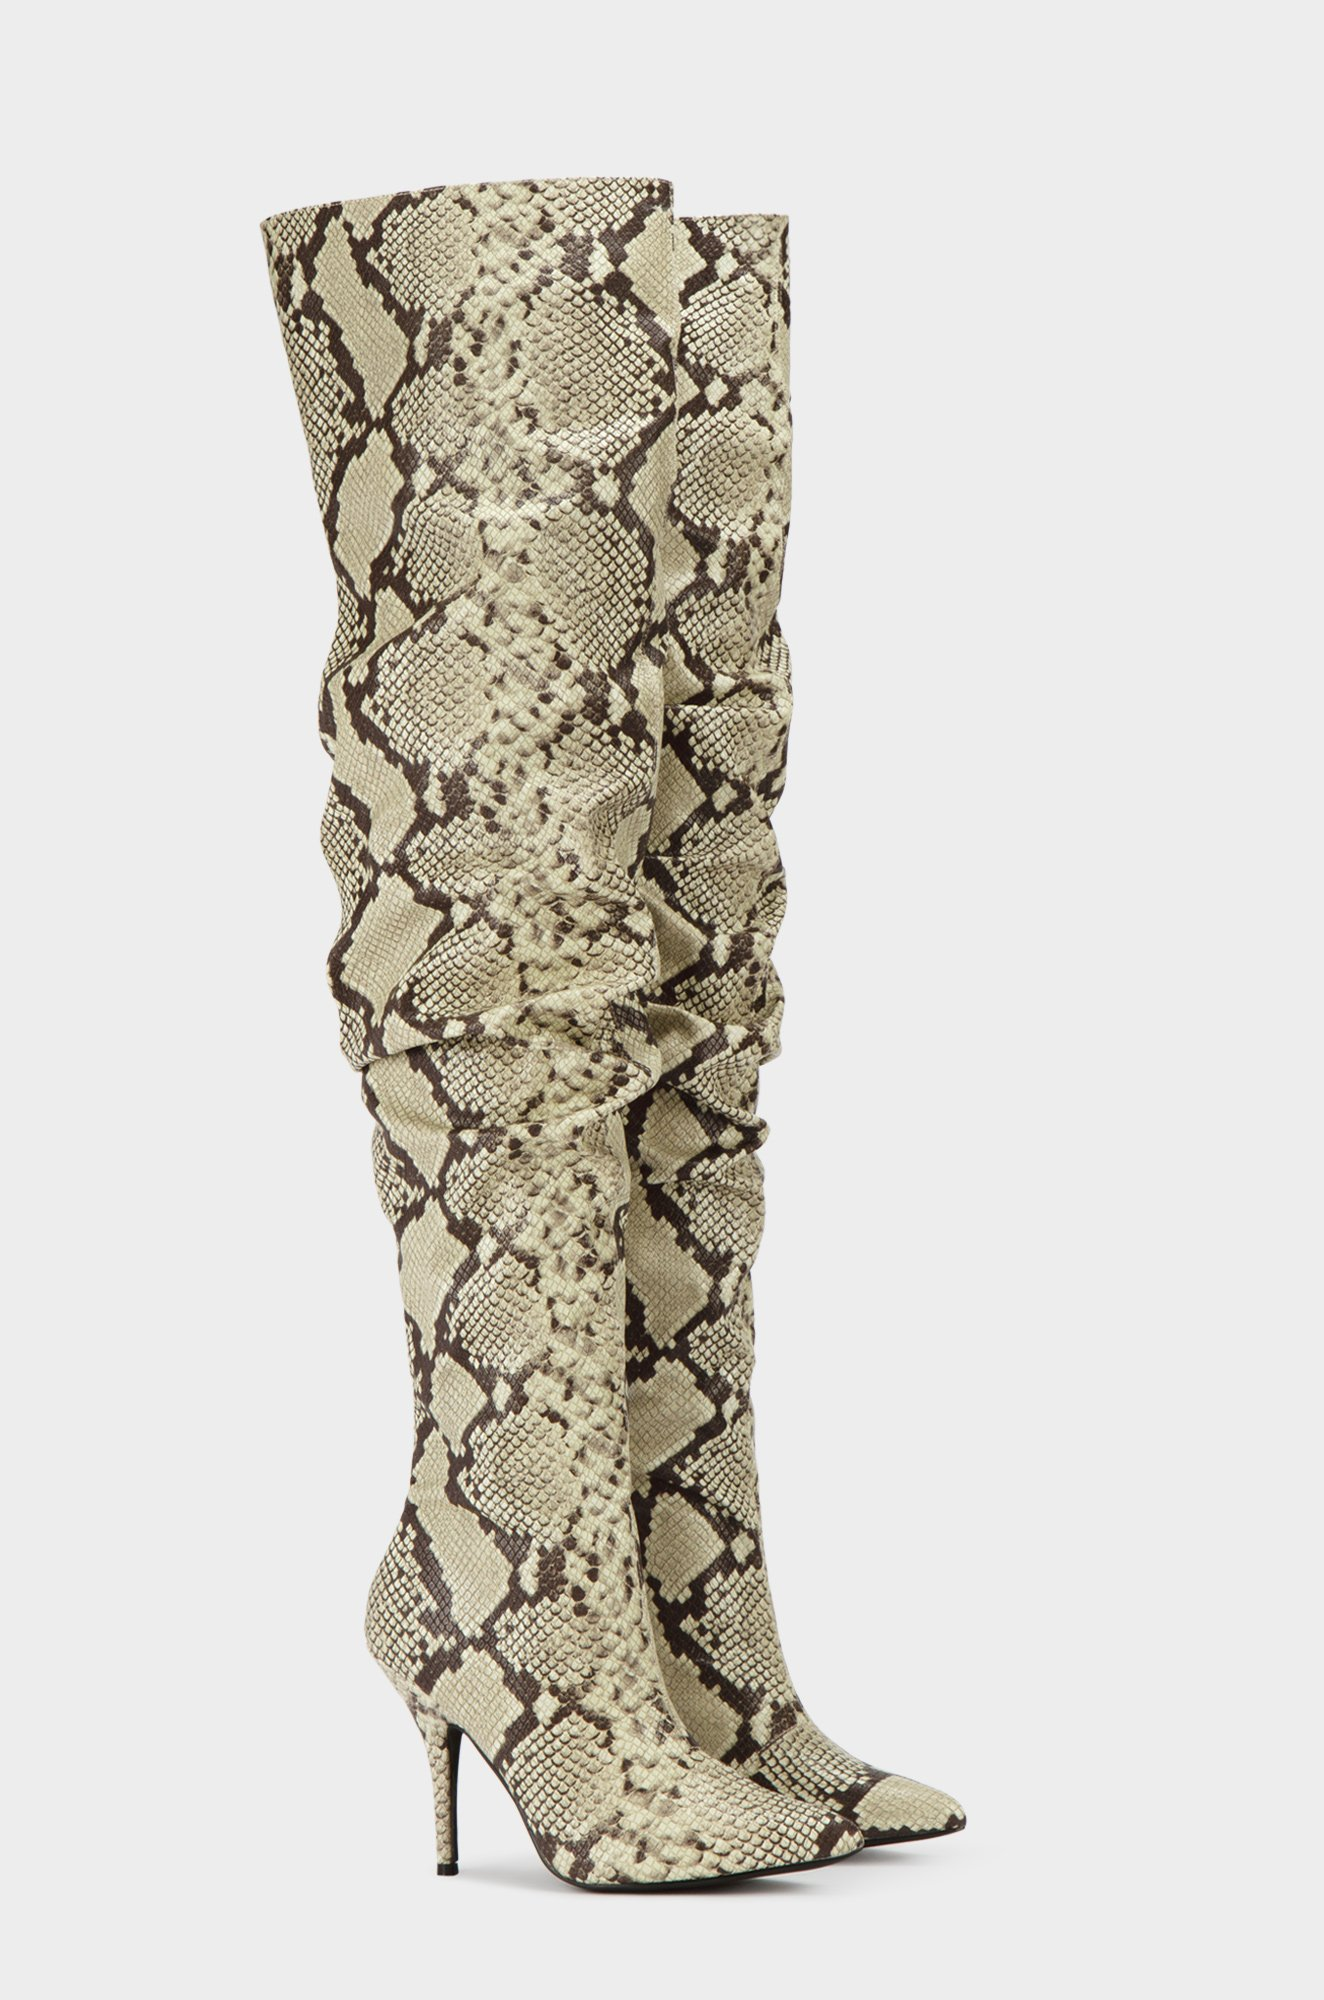 Cape-Robbin-Bown-Snake-Thigh-High-Slouch-Pointed-Toe-Over-The-Knee-Stiletto-Boot thumbnail 67